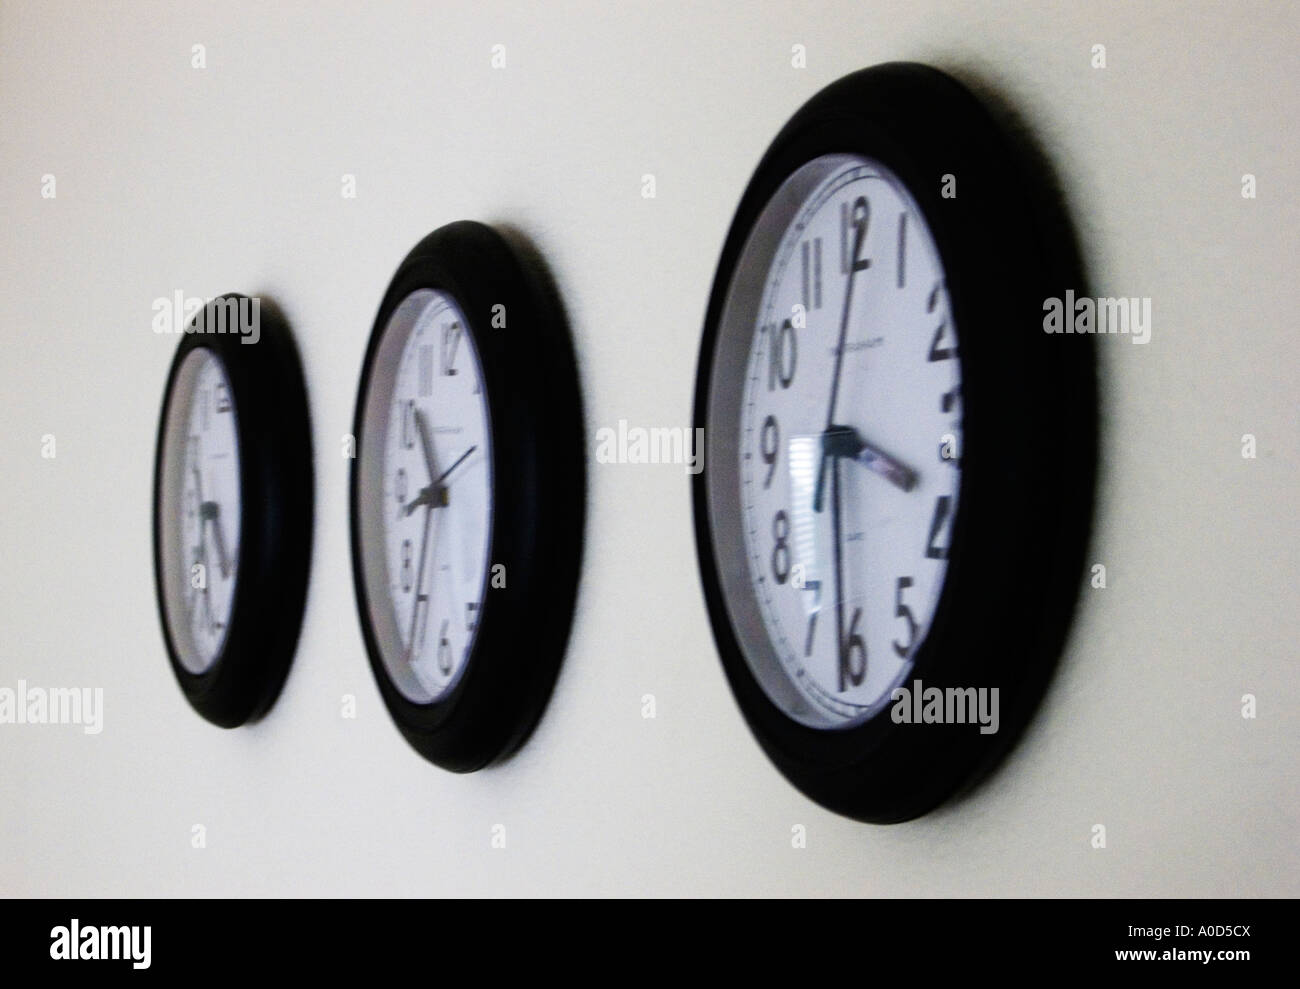 Attrayant Three Office Wall Clocks Set At Different Times